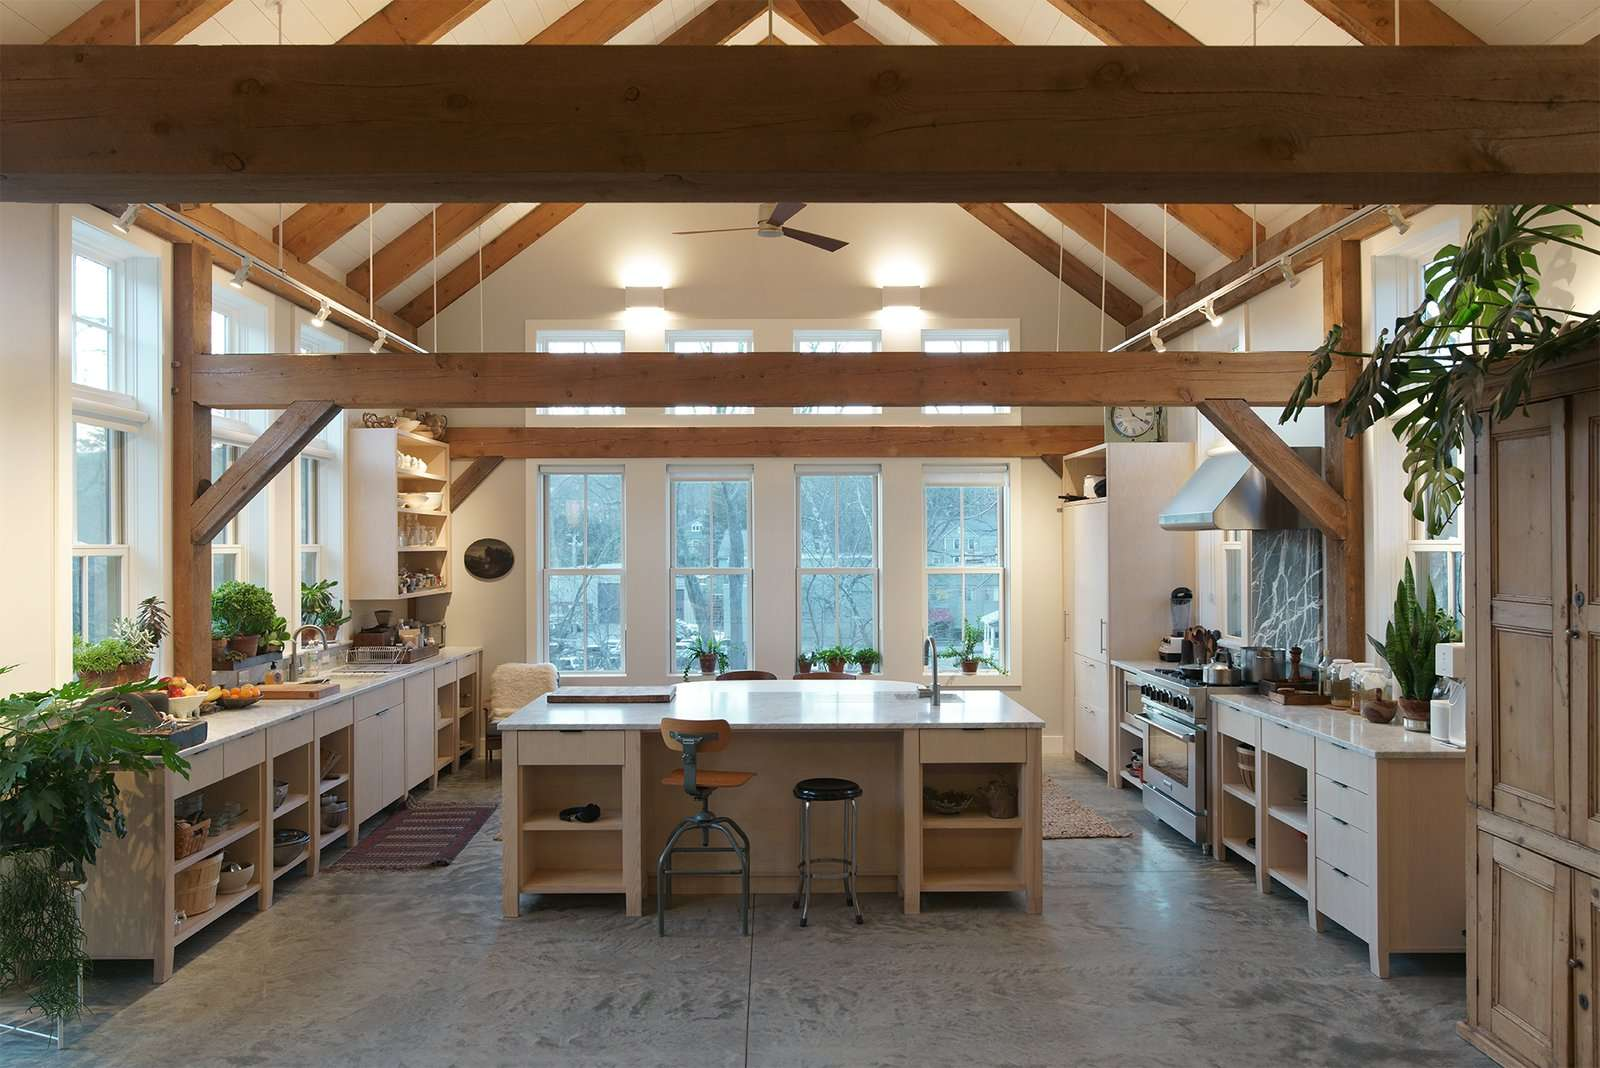 One of the houses being used by a landscape designer friend is filled with plants, capturing the many exposures of its open kitchen and living area.